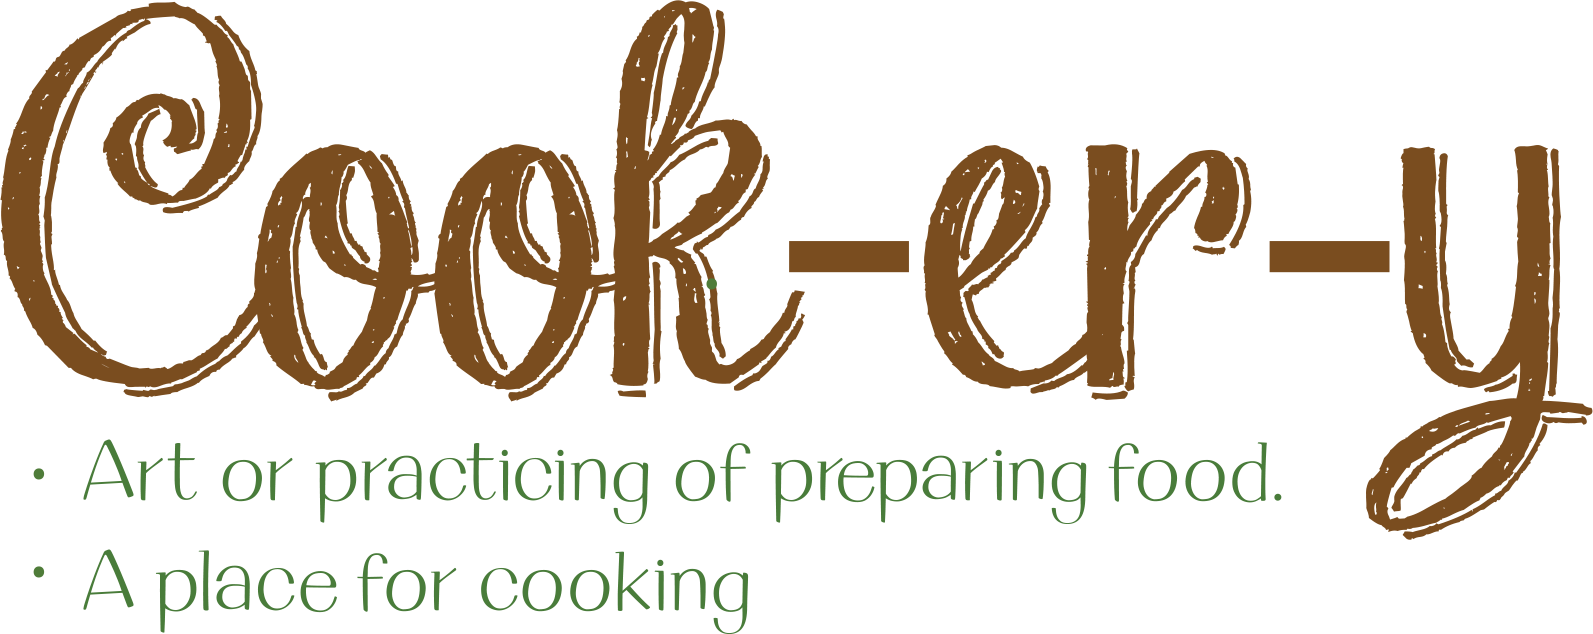 The logo for the Cookery catering program.